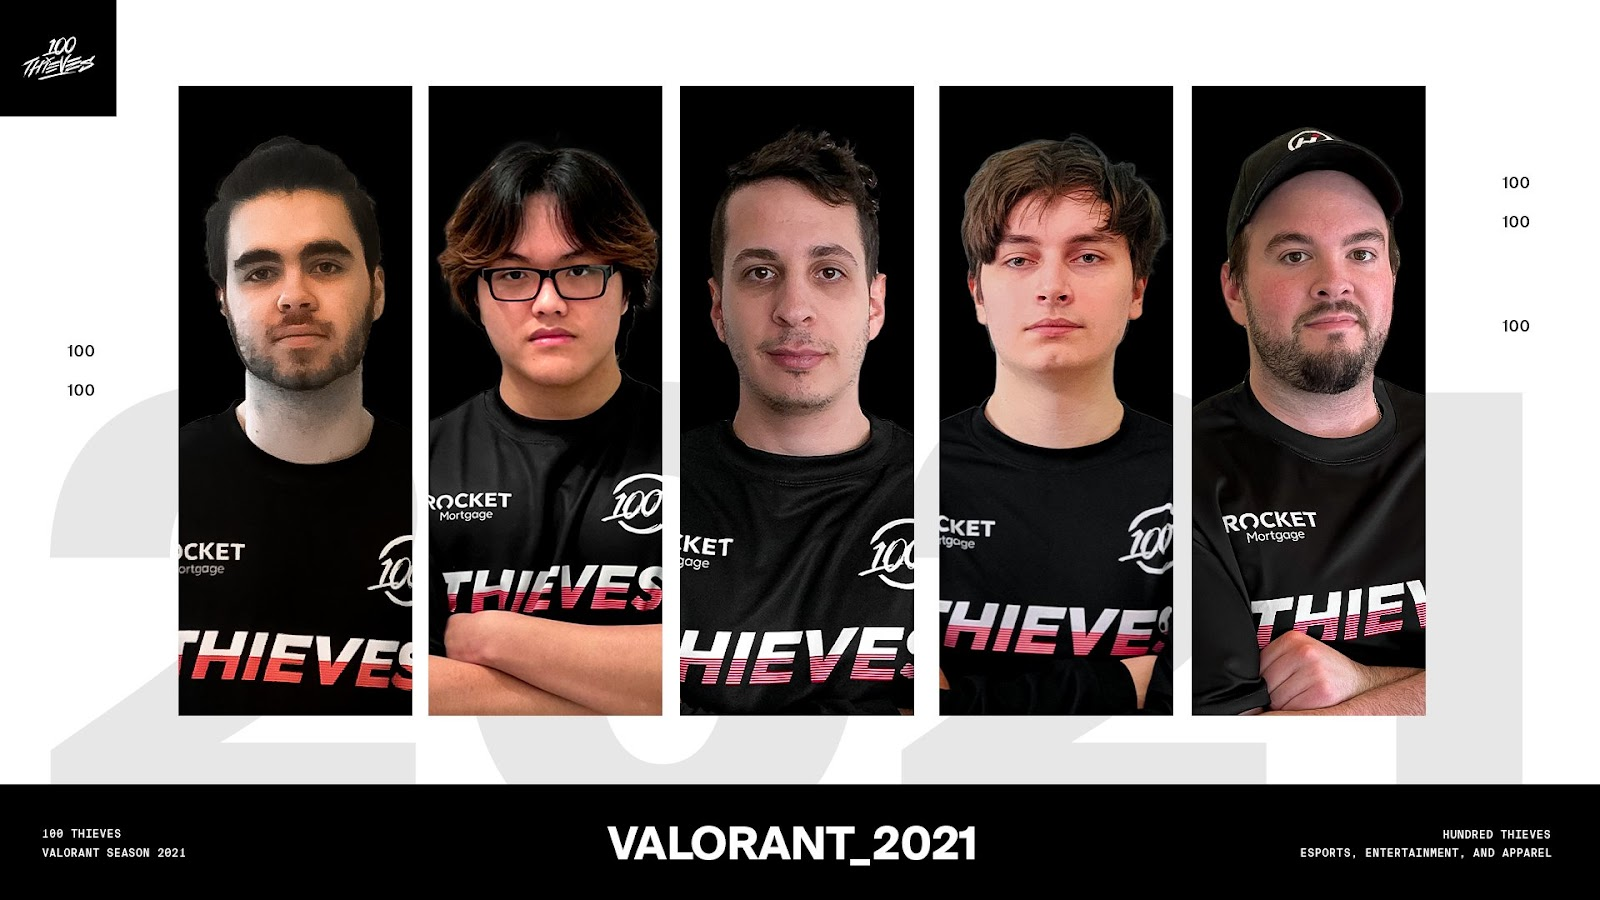 'Silenx' has was a part of the Valorant roster for 100 Thieves at the Challengers 1 competition